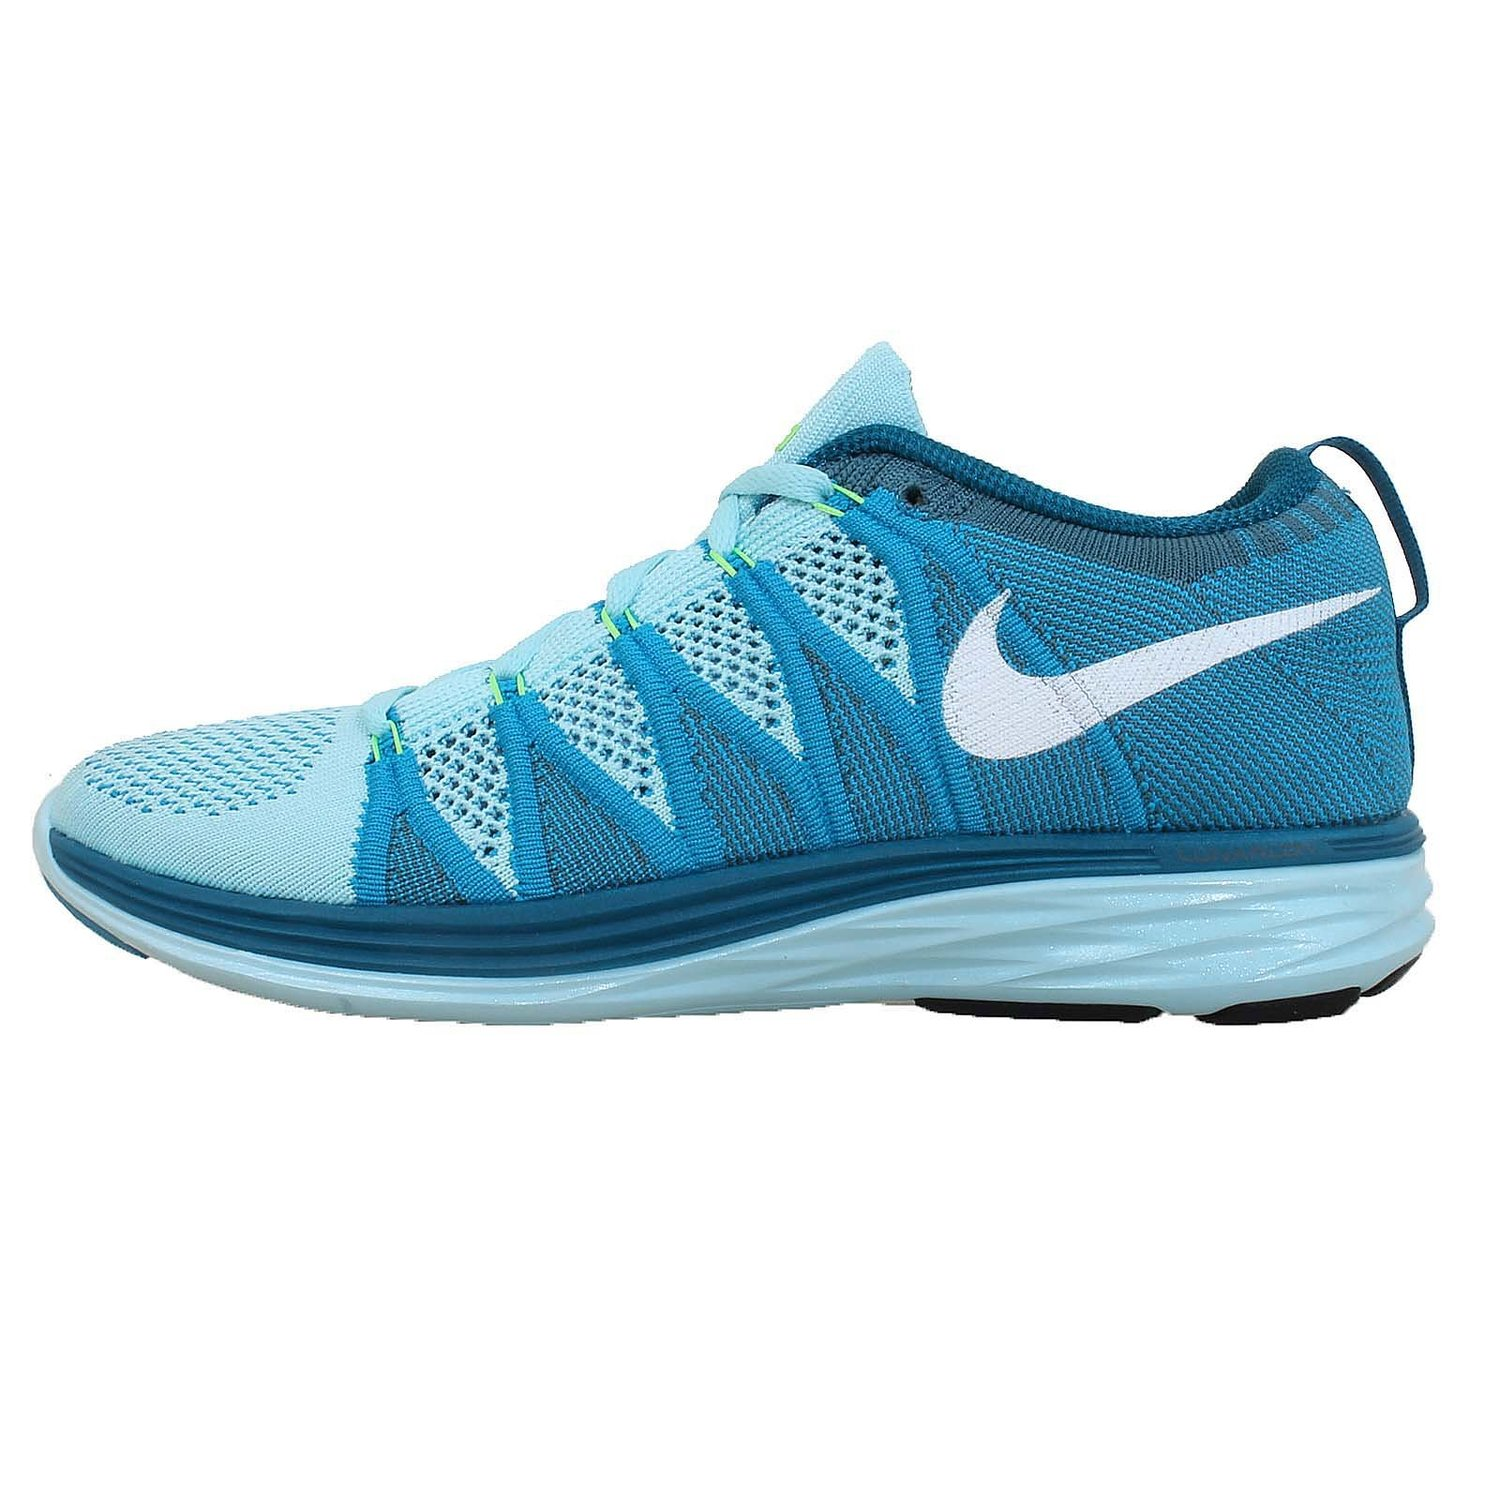 Nike Flyknit Lunar2 Running Trainers 620658 414 Sneakers Shoes